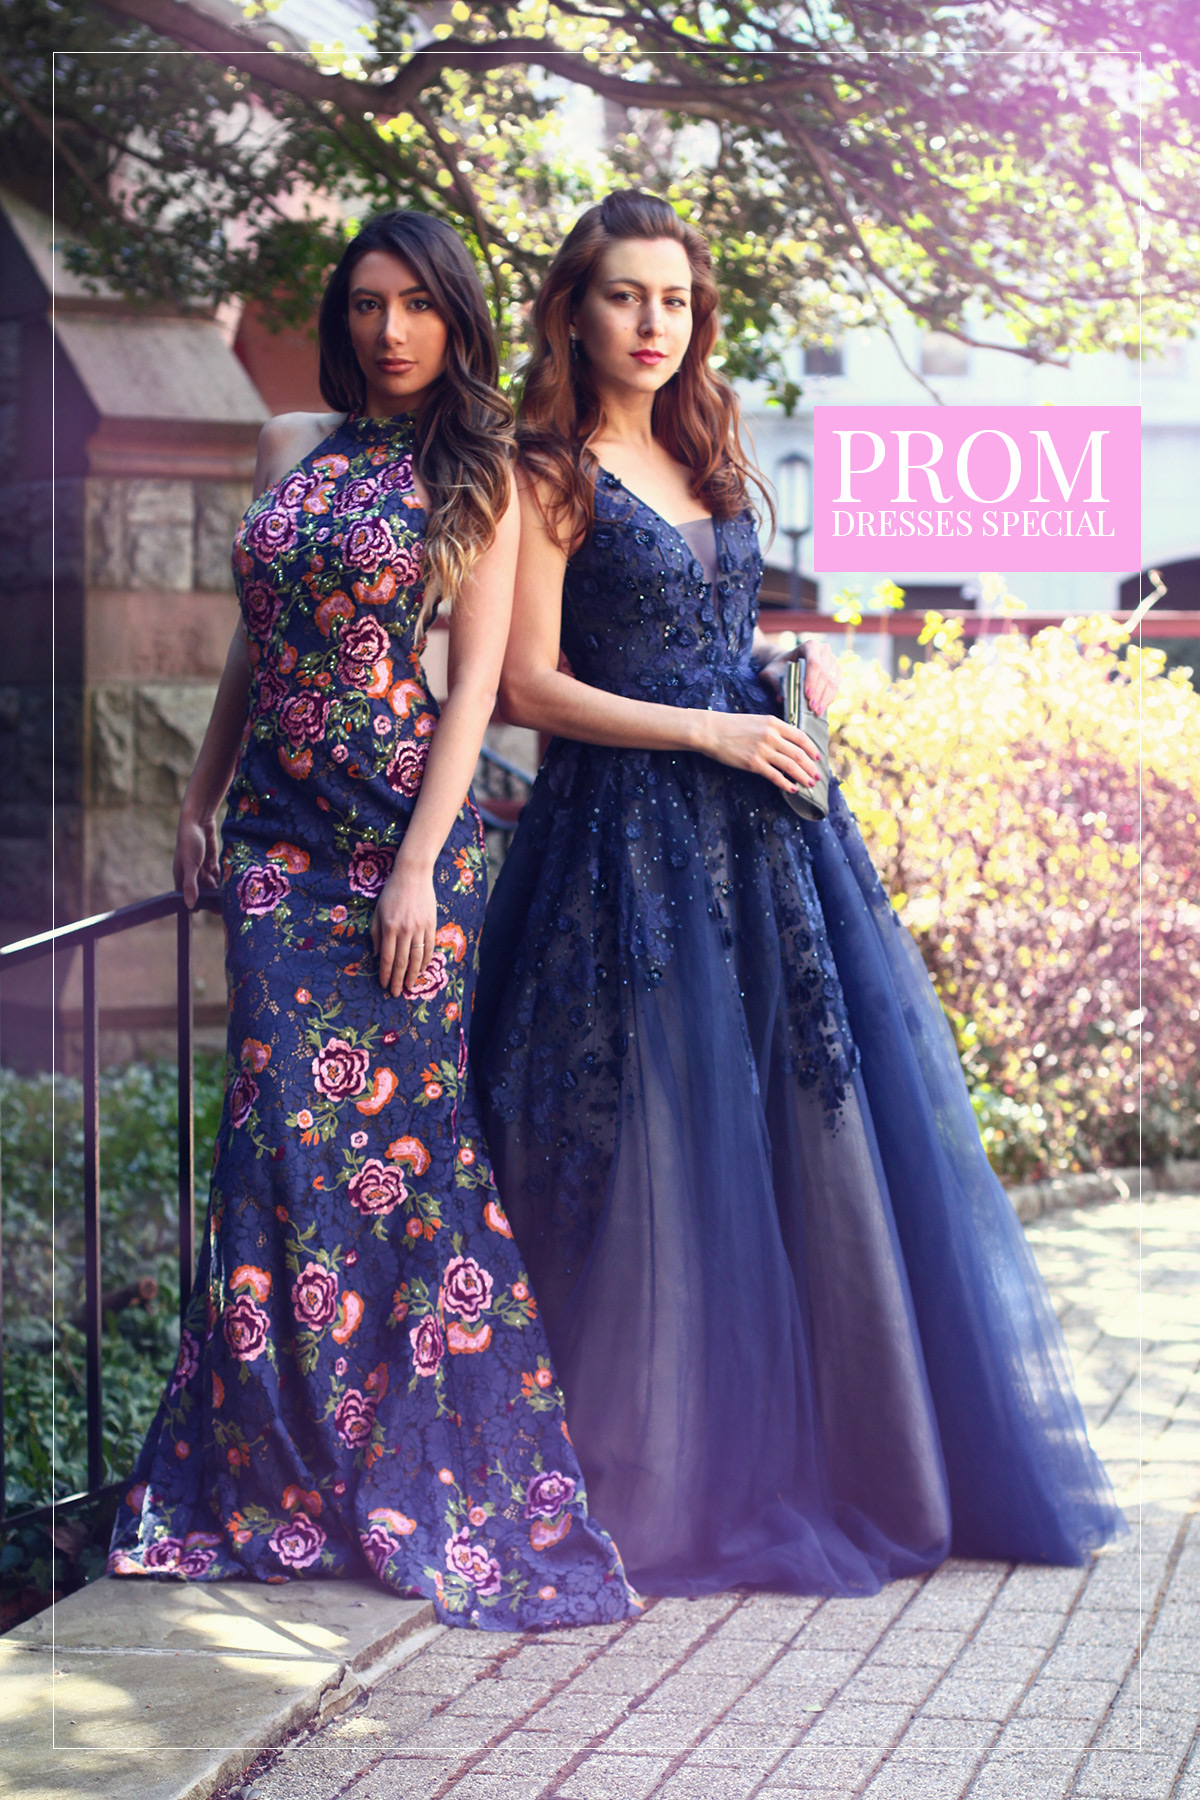 Ulia Ali prom dresses collaboration. Jovani and Basix Label